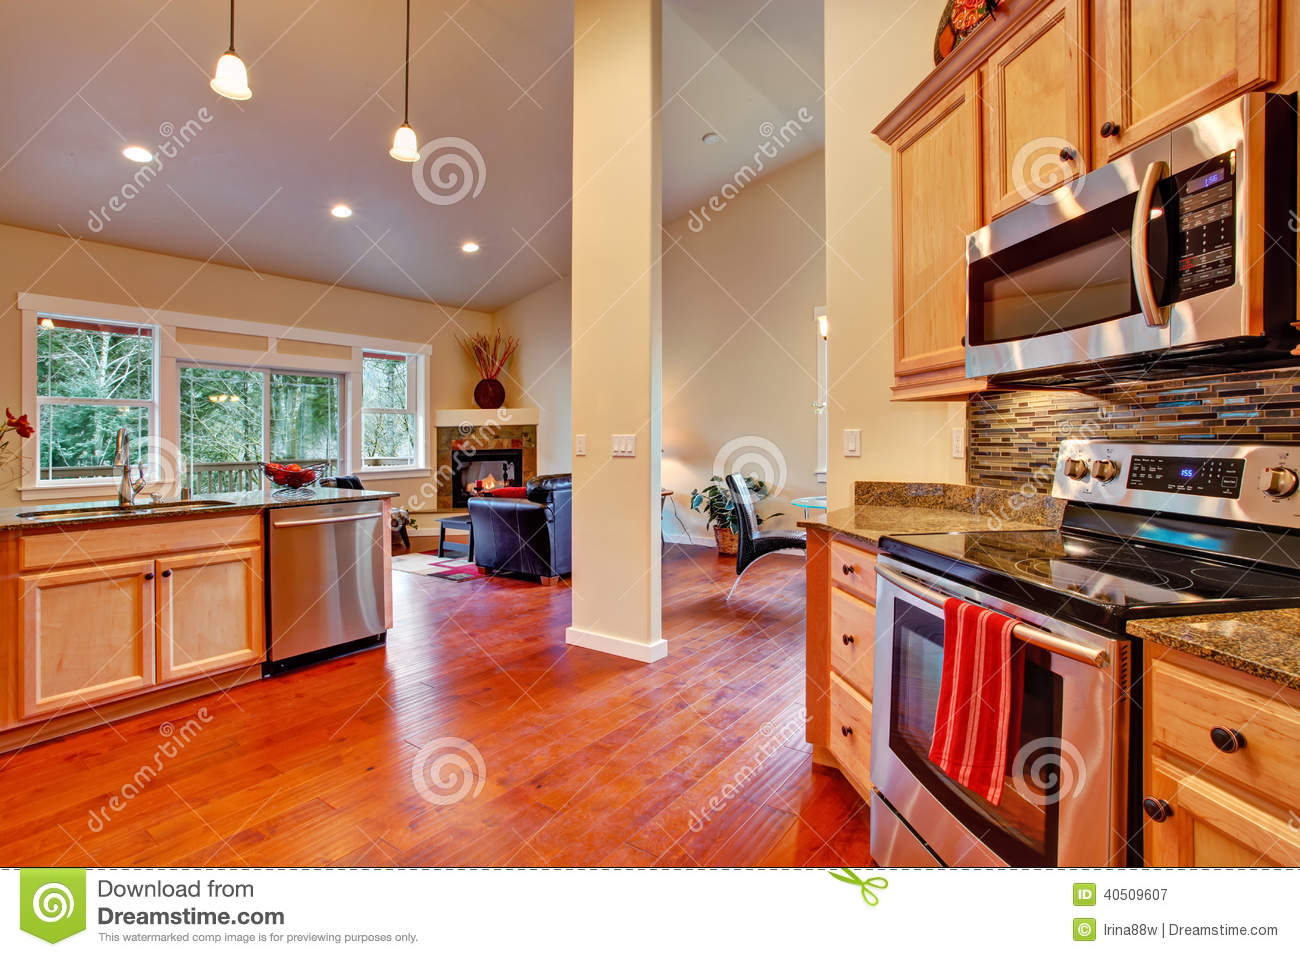 House interior open floor plan kitchen area stock photo for Open floor plans with vaulted ceilings